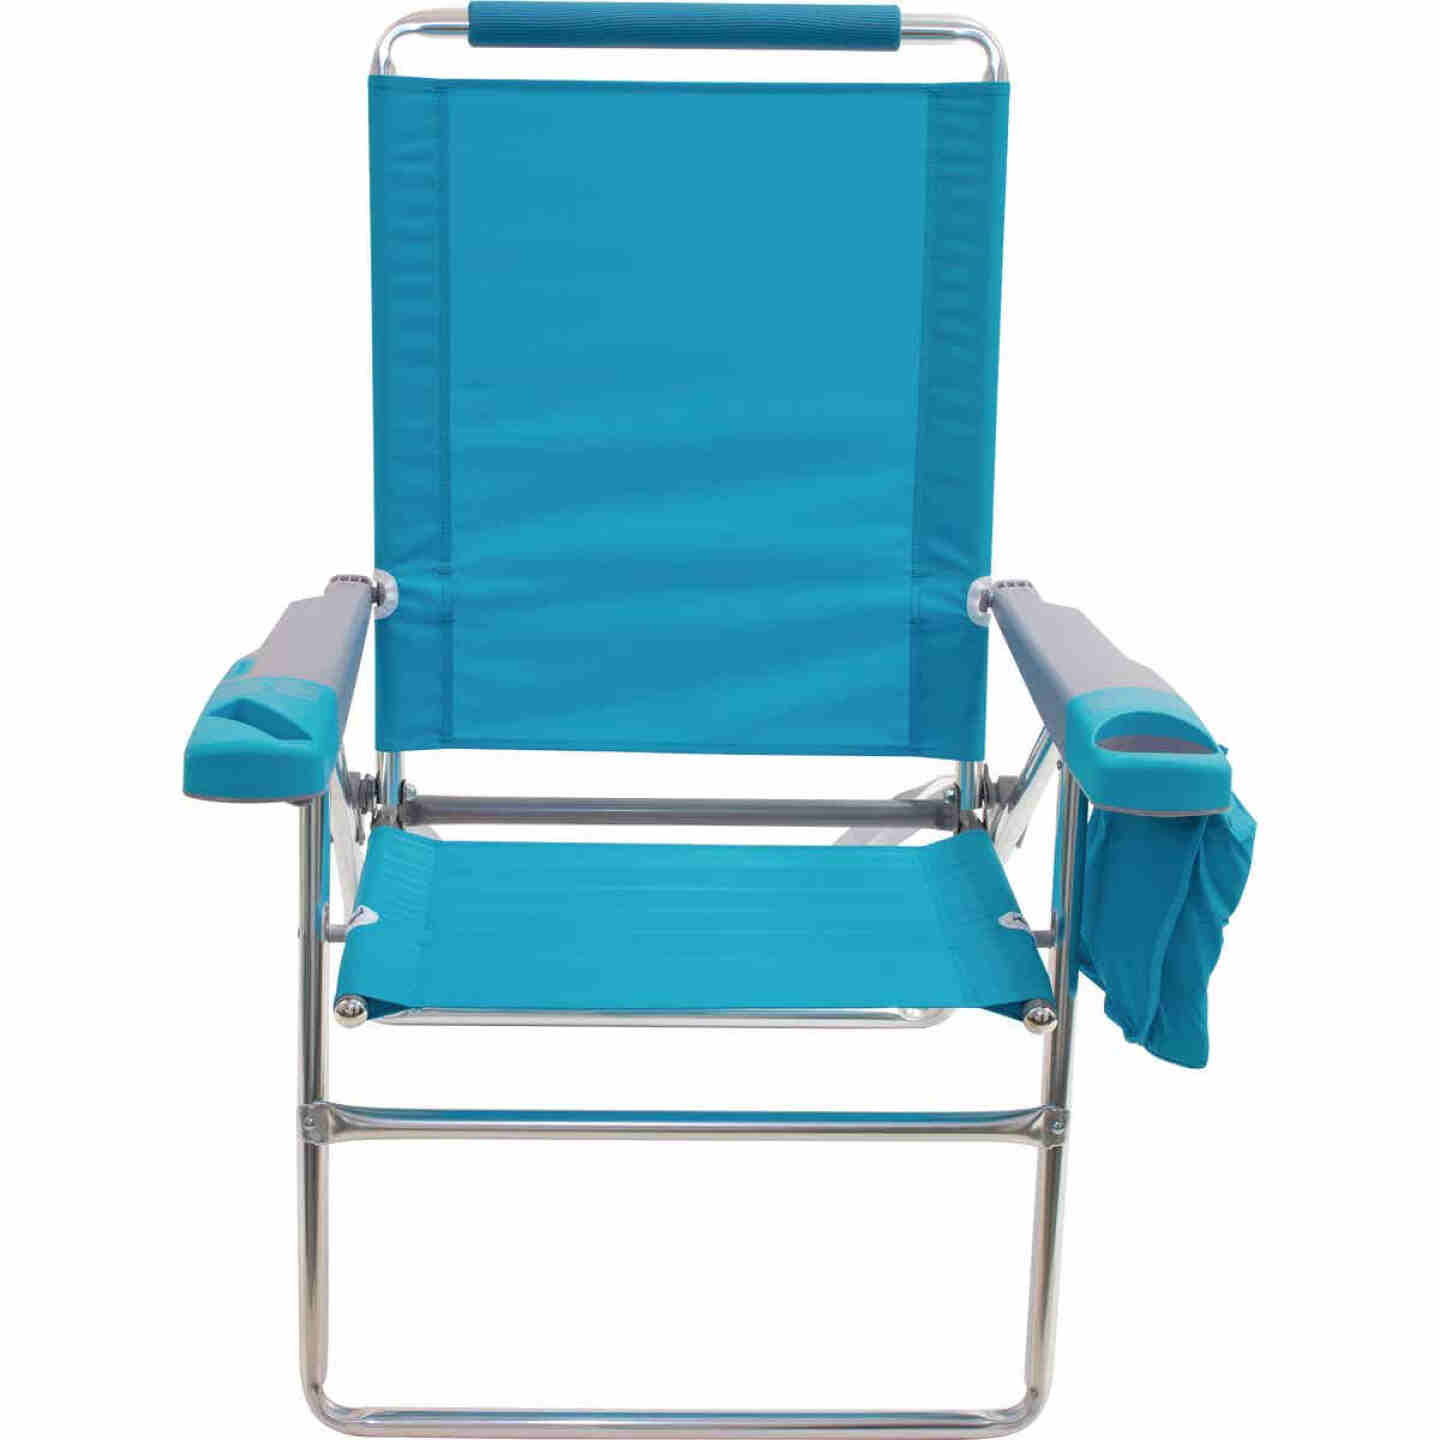 Rio Brands 4-Position Aluminum Folding Beach Chair with Cooler Image 4